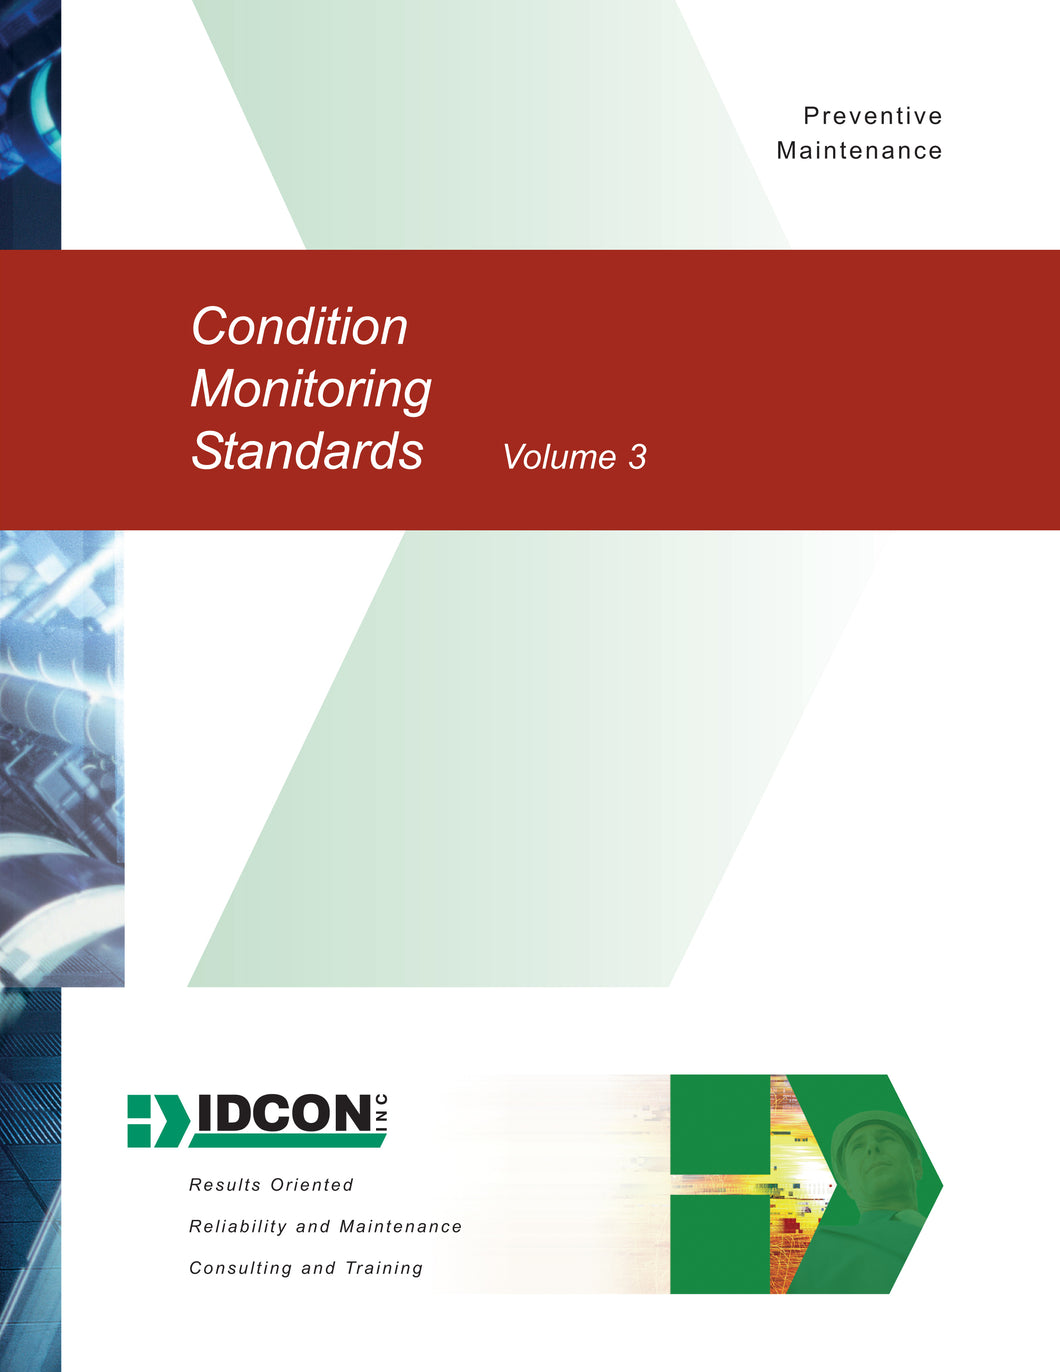 Condition Monitoring Standards Volume 3